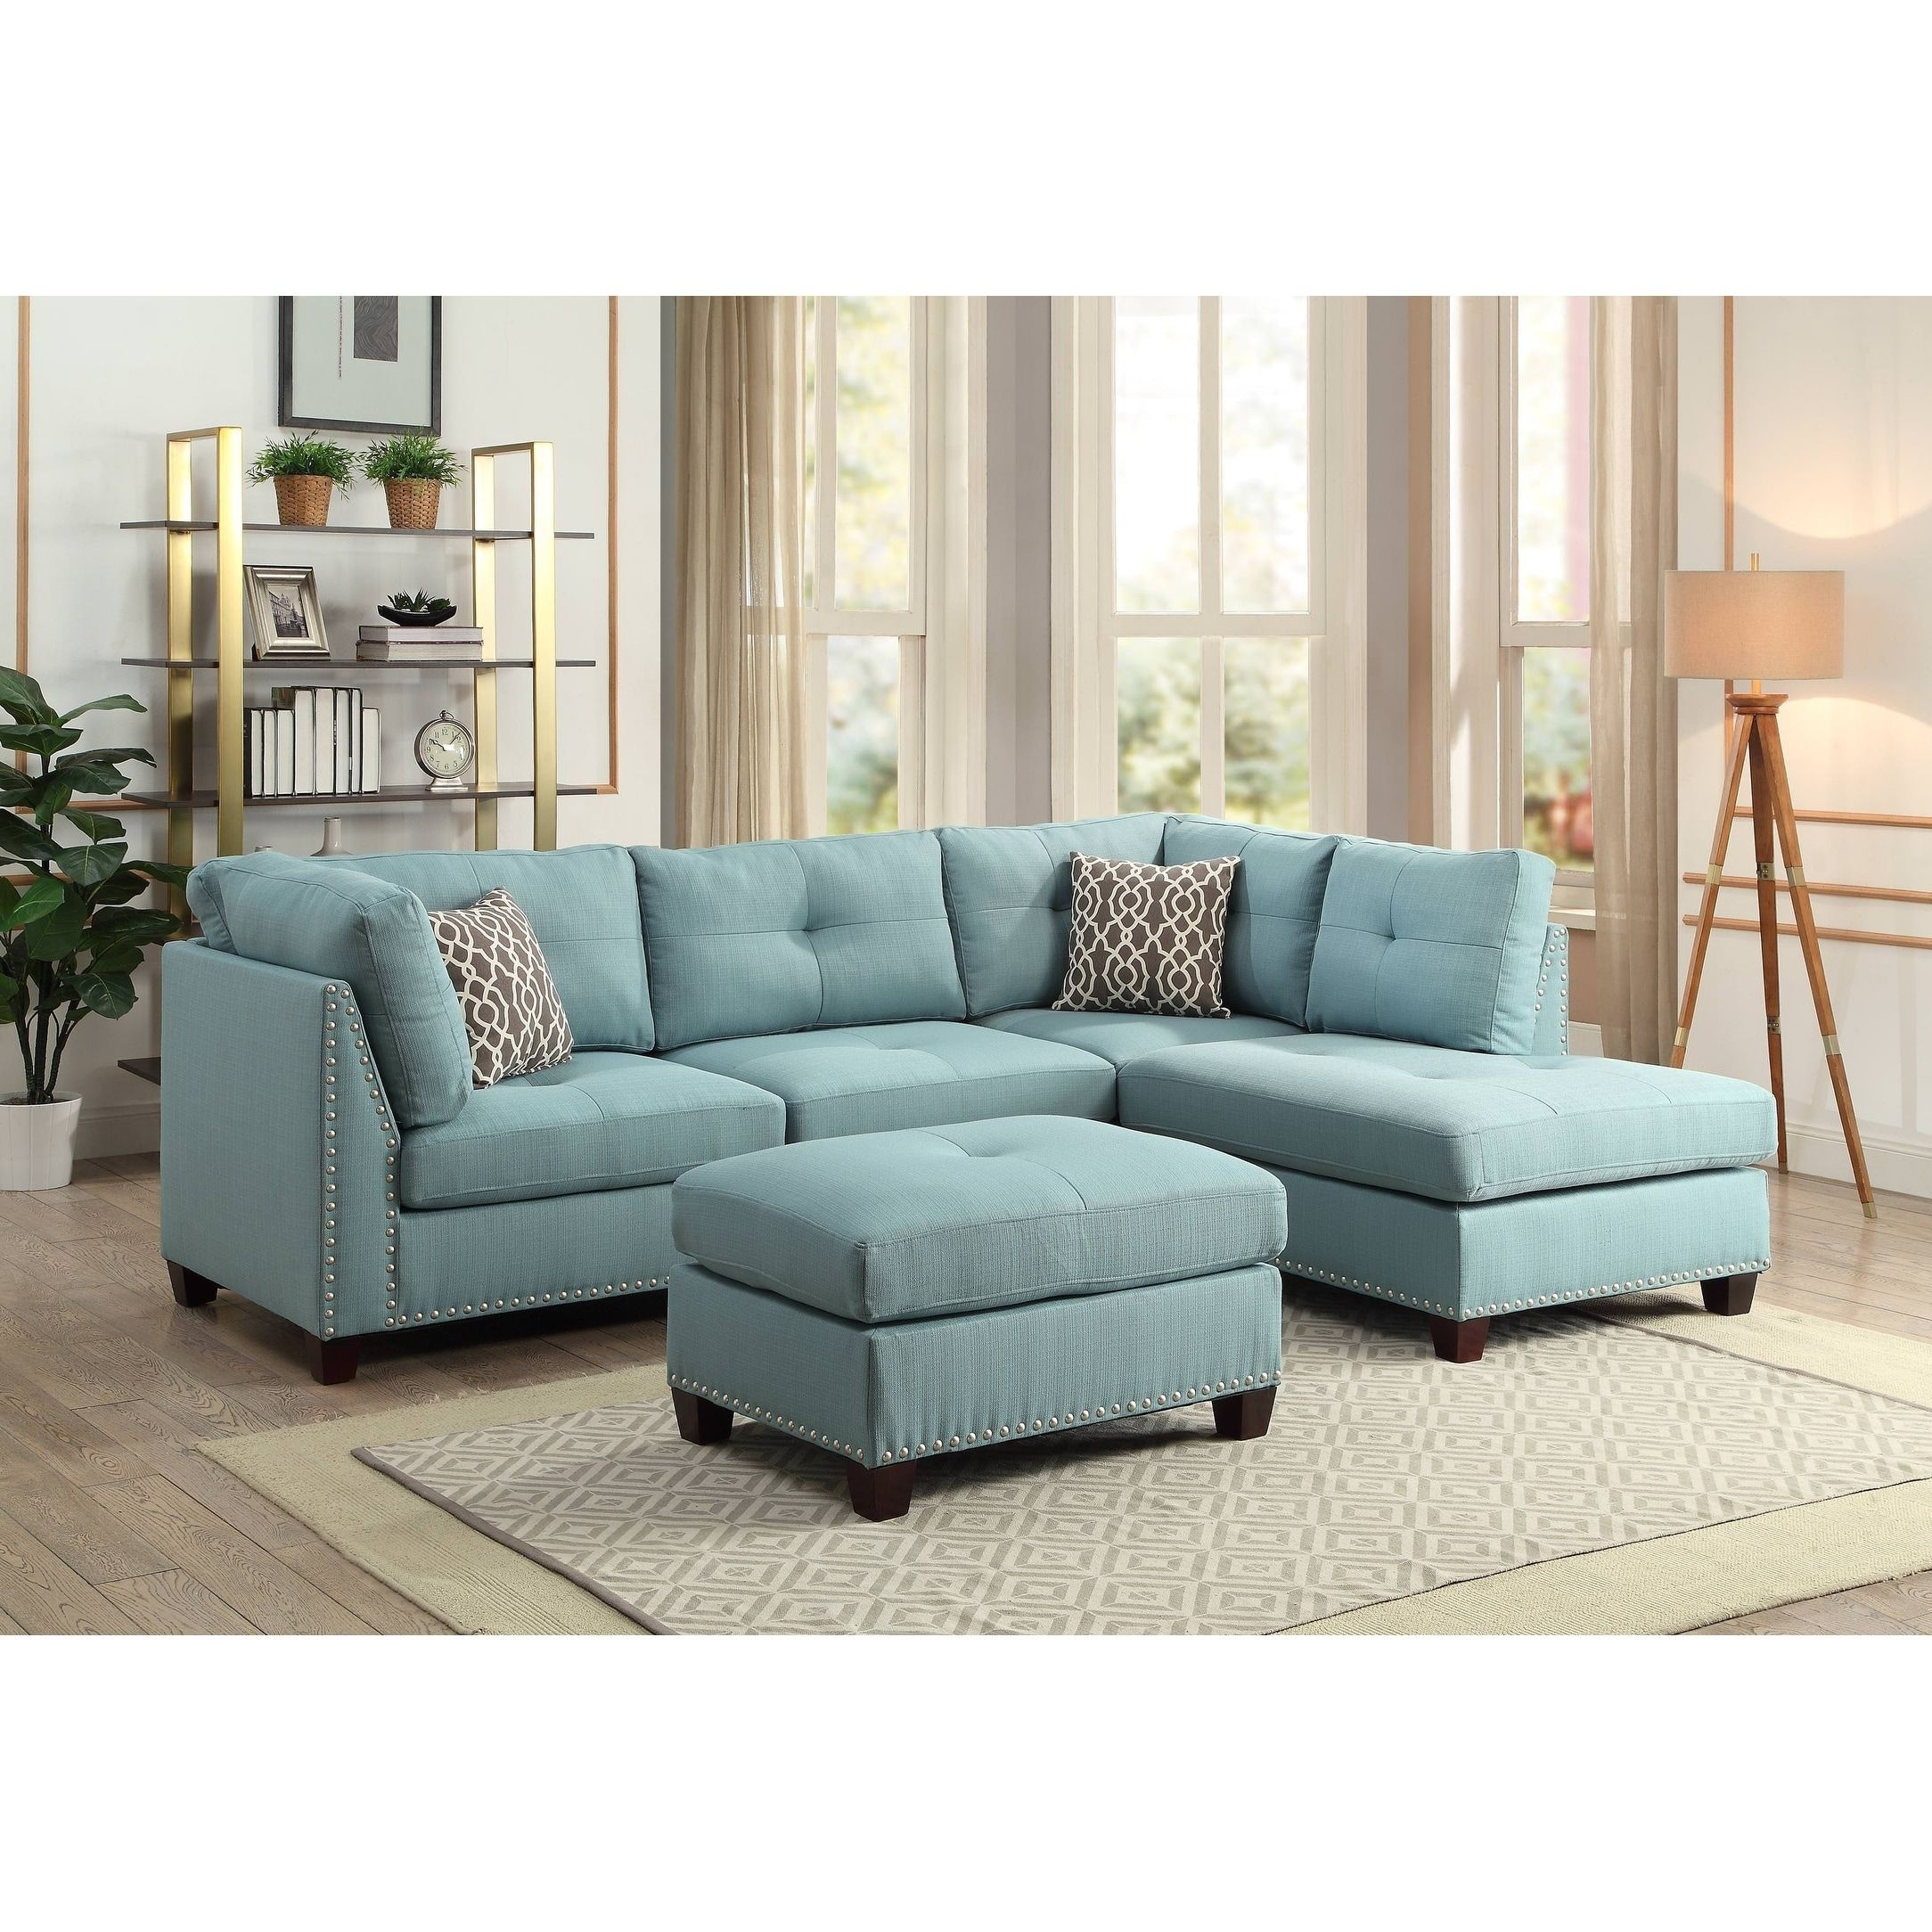 Sensational Acme Laurissa L Shape Sectional Sofa With Ottoman In Light Beatyapartments Chair Design Images Beatyapartmentscom